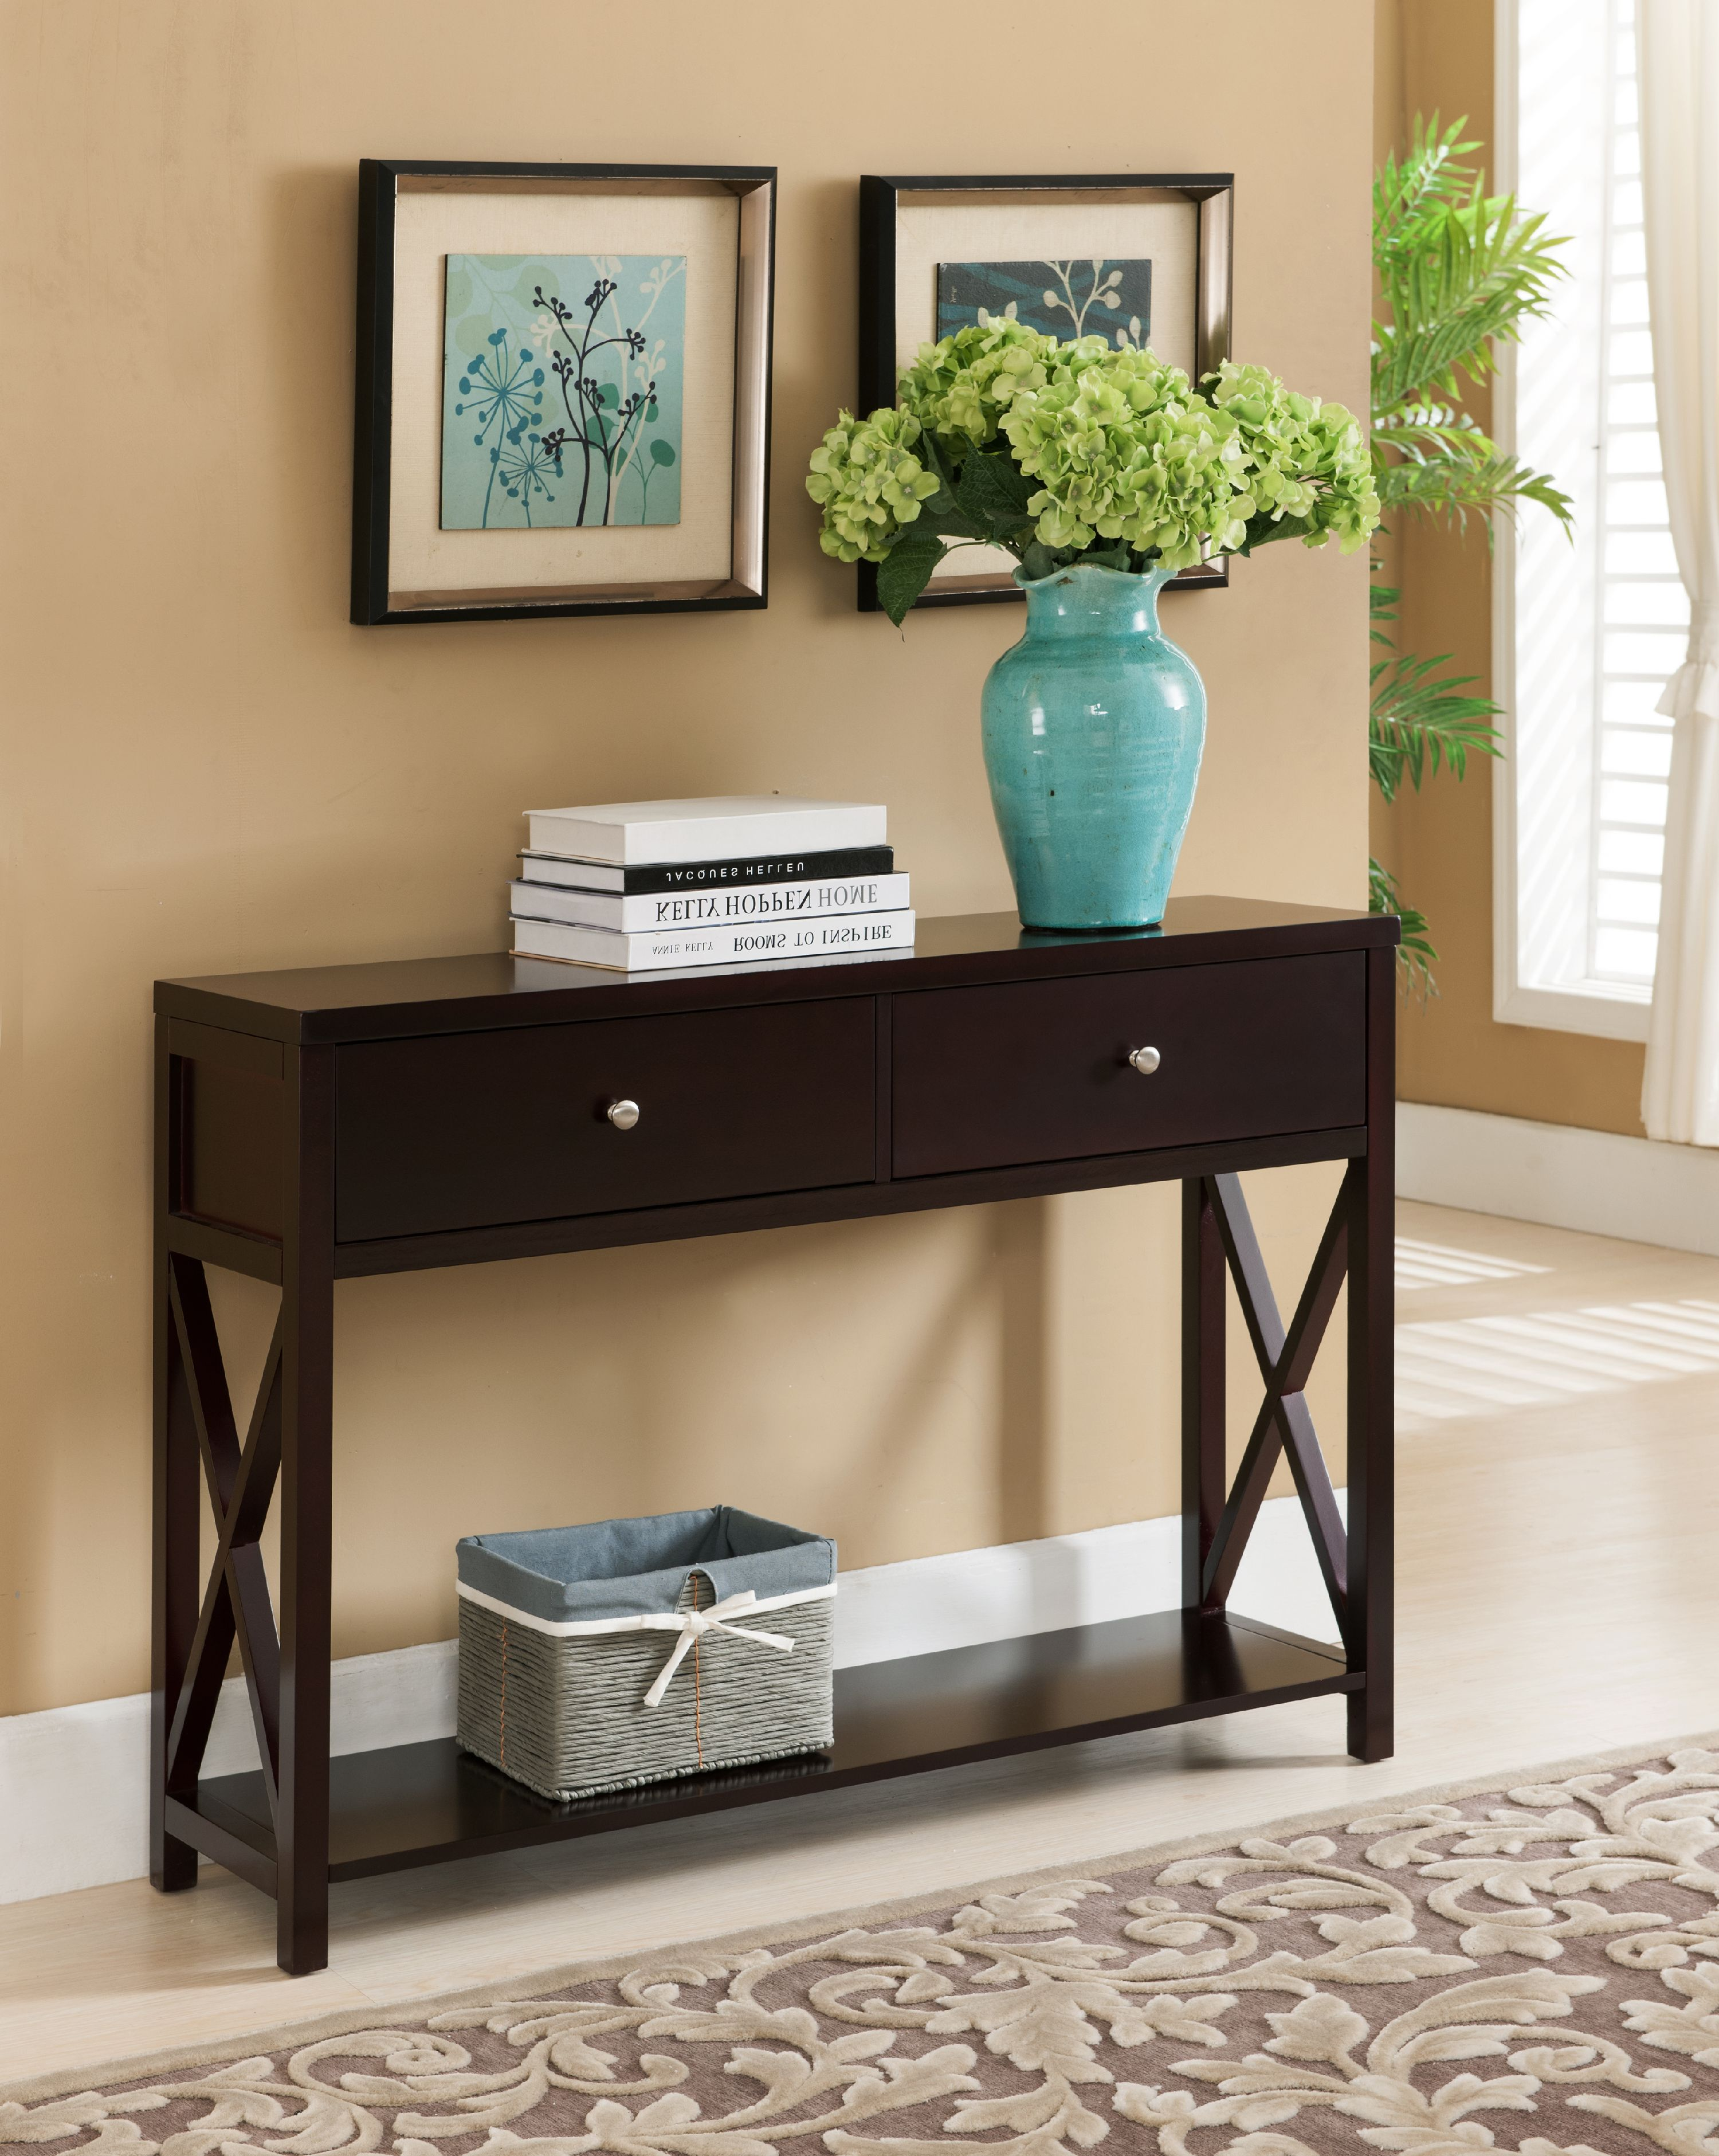 Dark Cherry Wood Occasional Entryway Console Sofa Table With Storage Drawers & Shelf by unknown